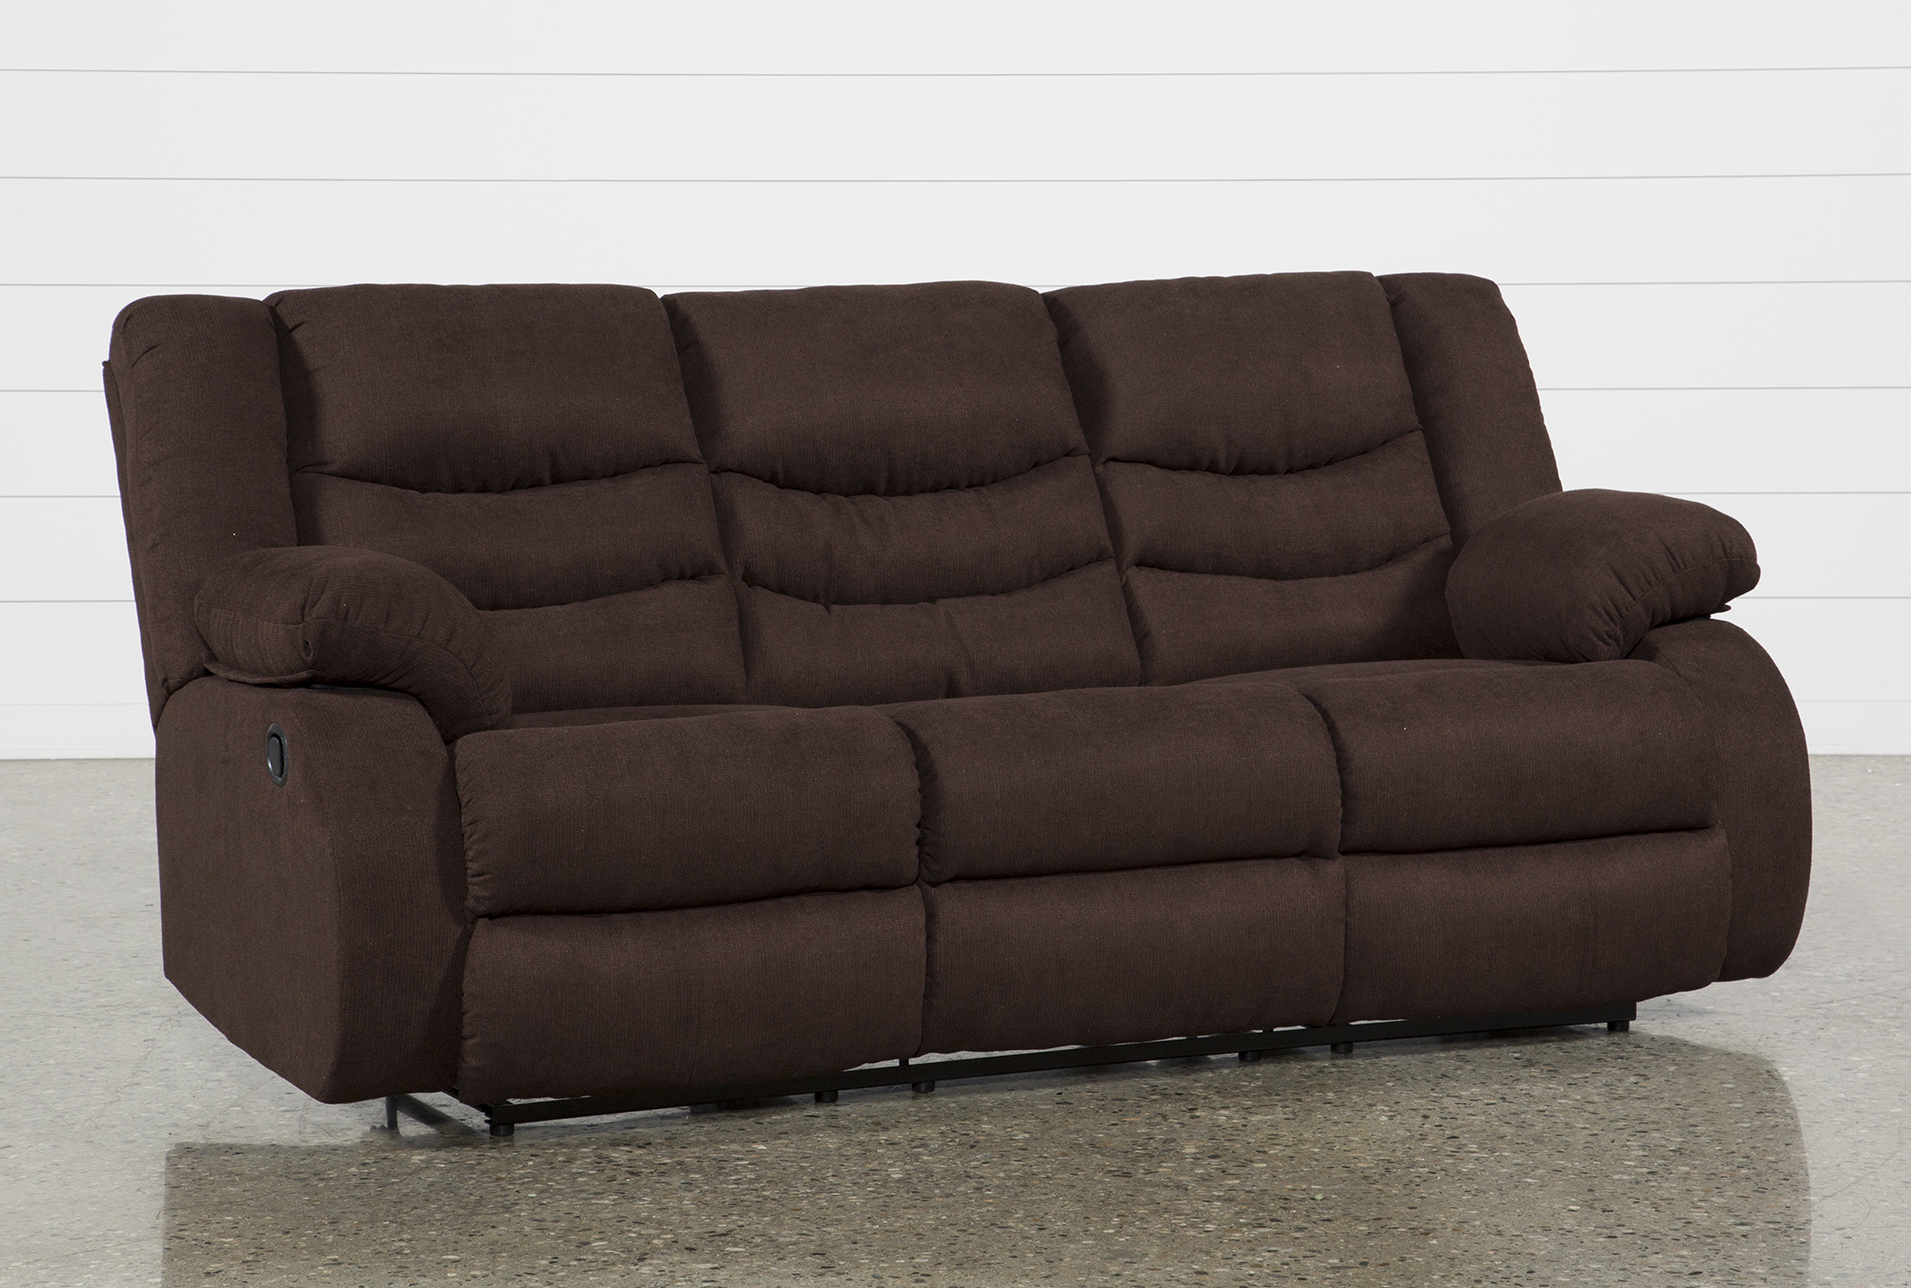 Haines Chocolate Reclining Sofa